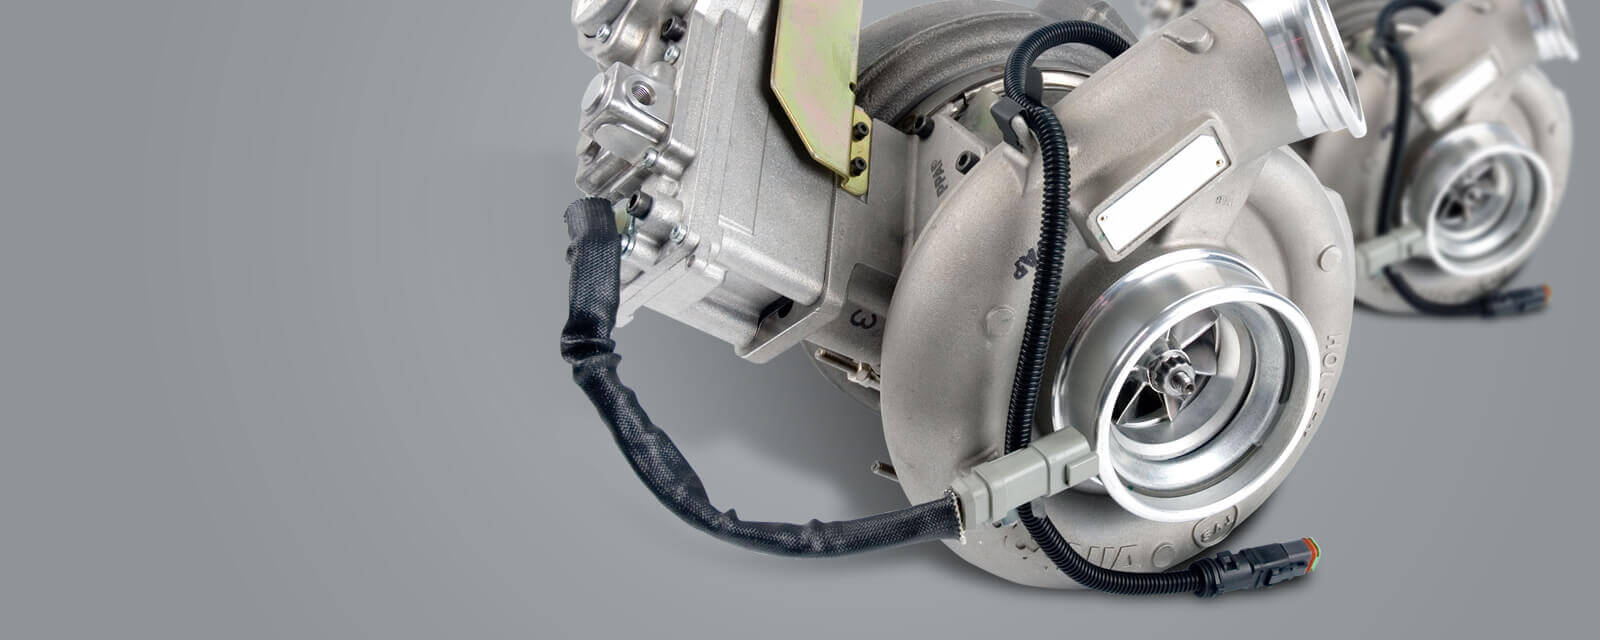 Diesel USA Group | Holset Turbochargers